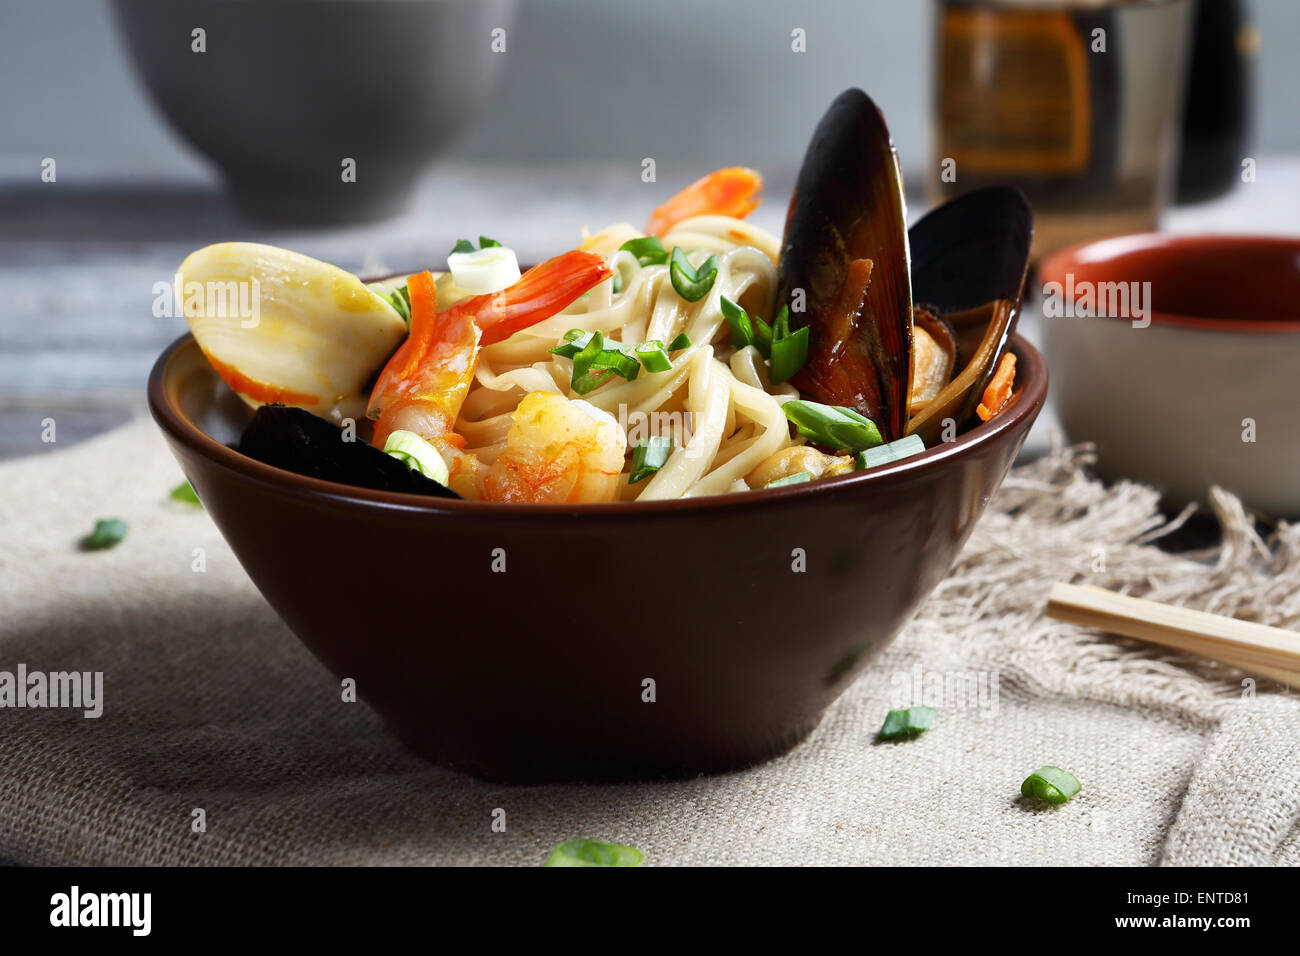 noodles with mussels and onions, food - Stock Image